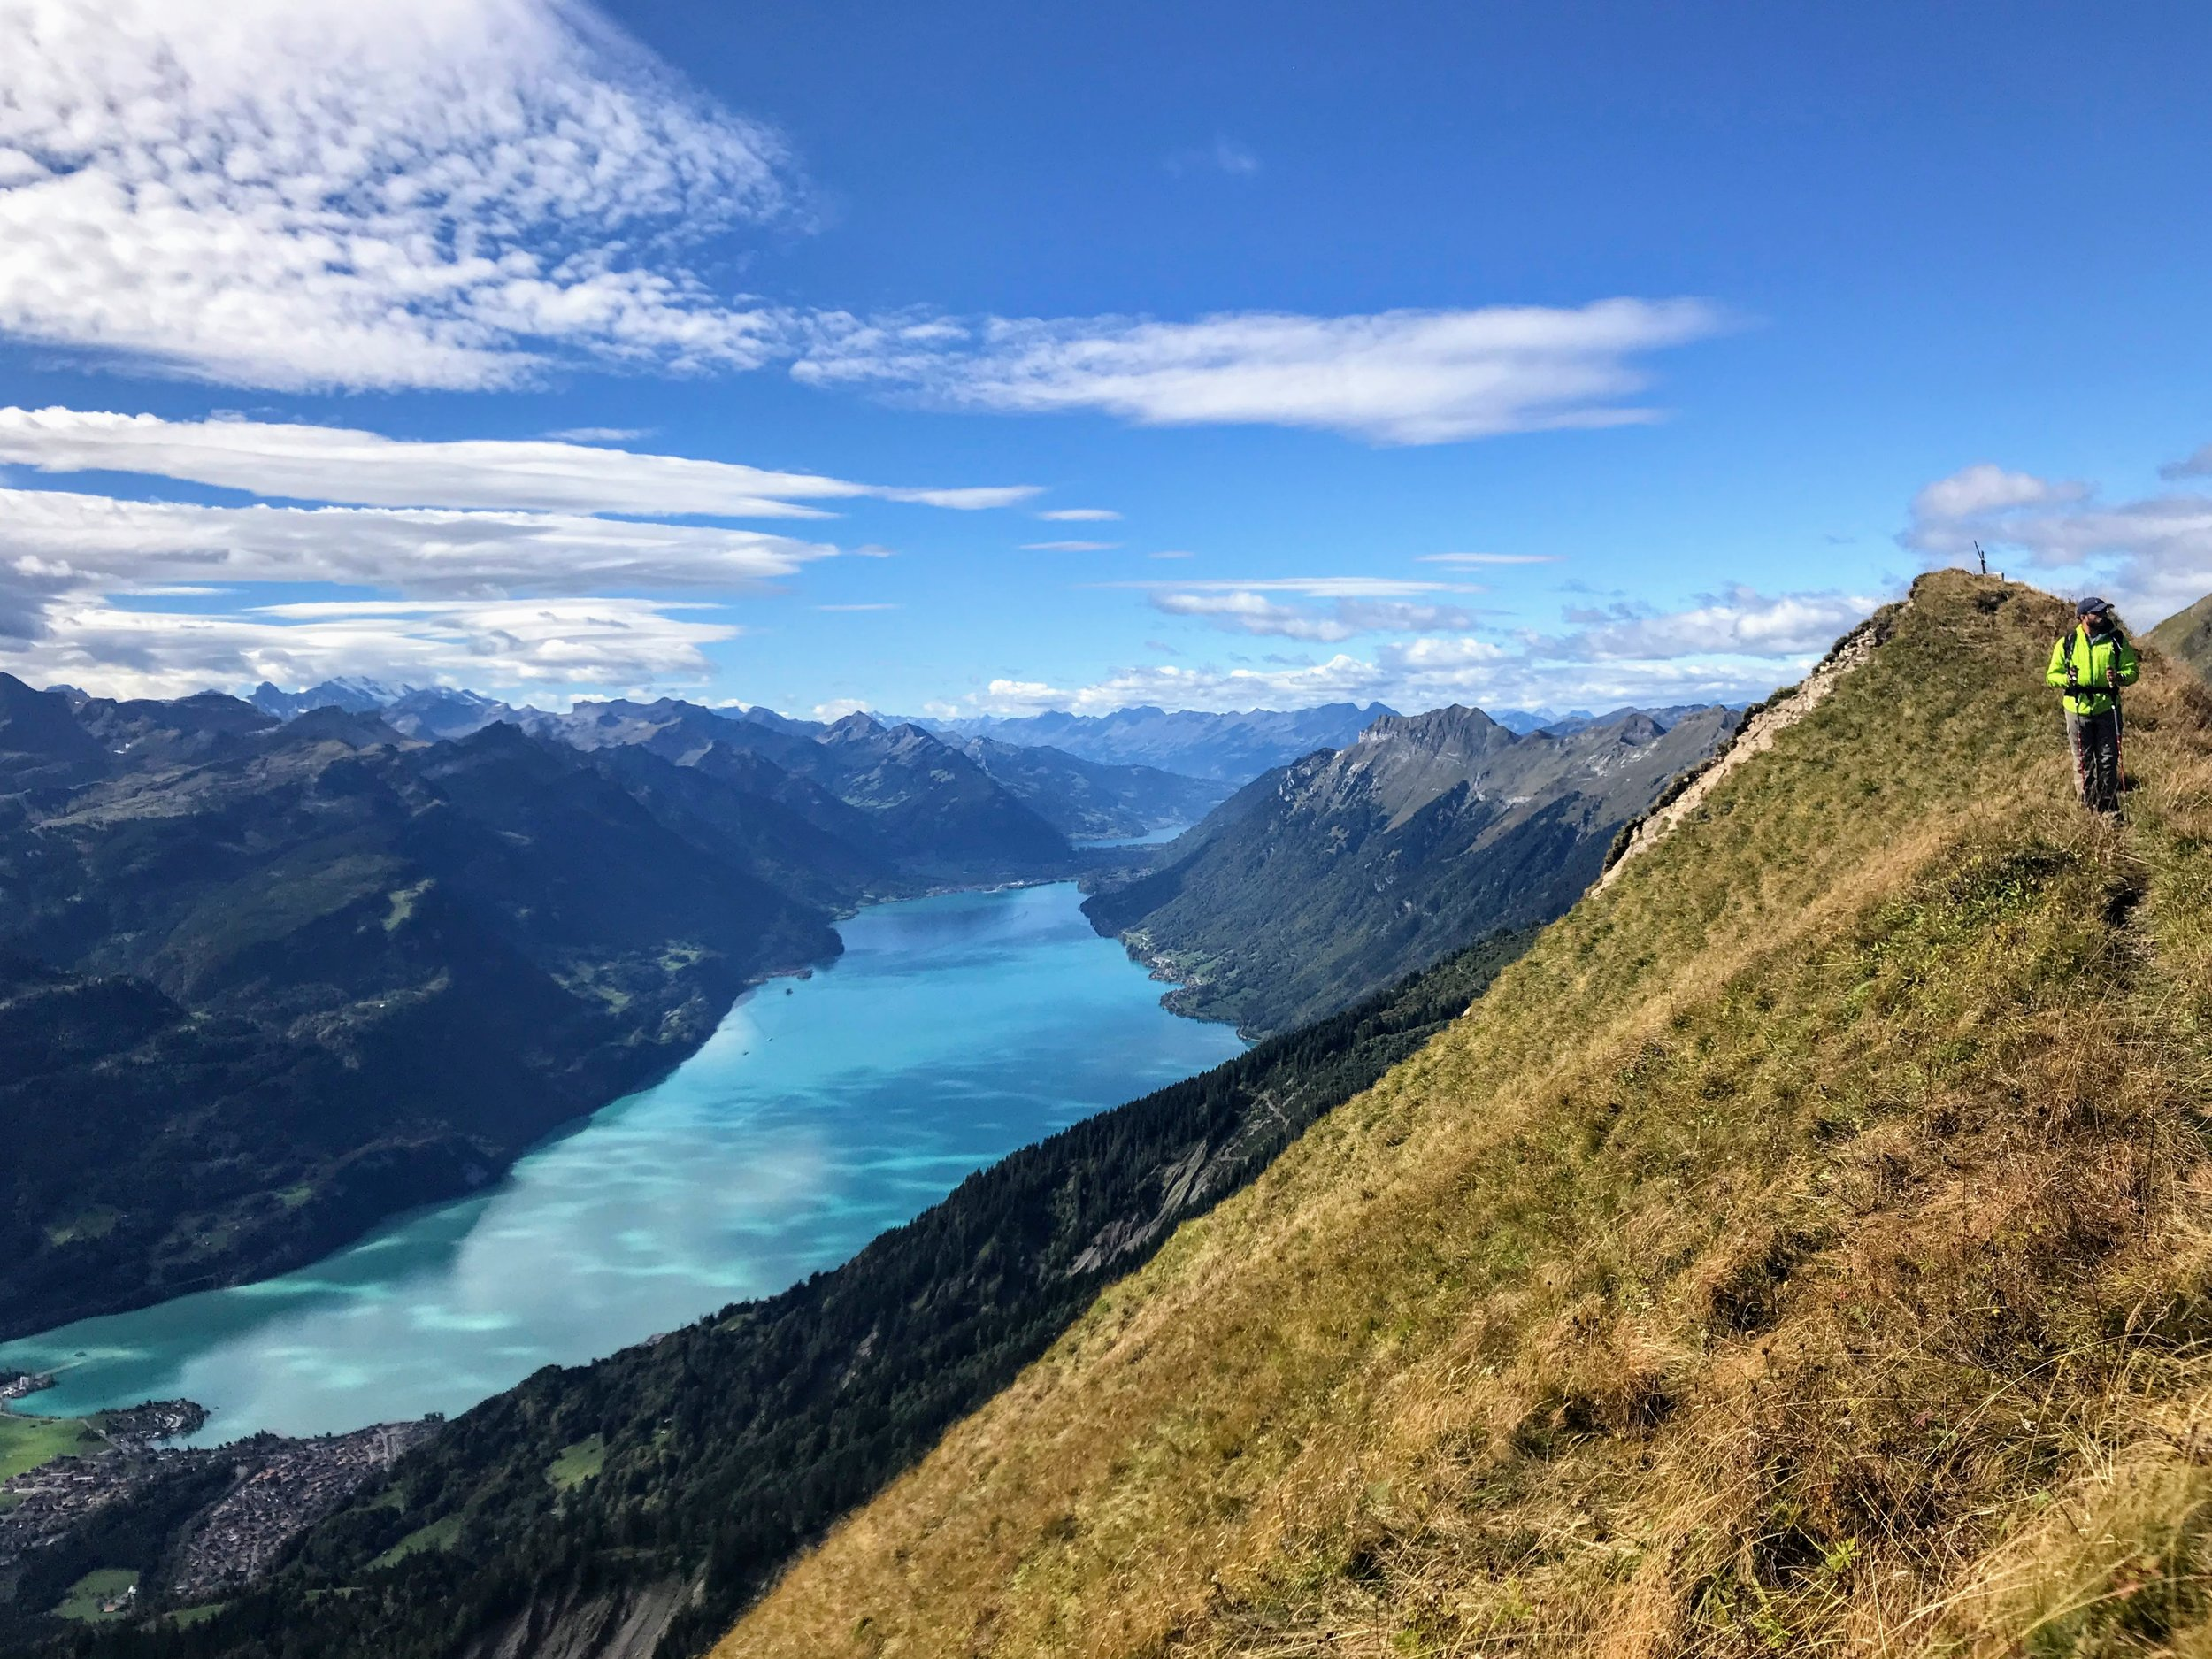 Lake Brienz, with the entire panorama ranging from Mt Säntis in Eastern Switzerland to the Diablerets chain